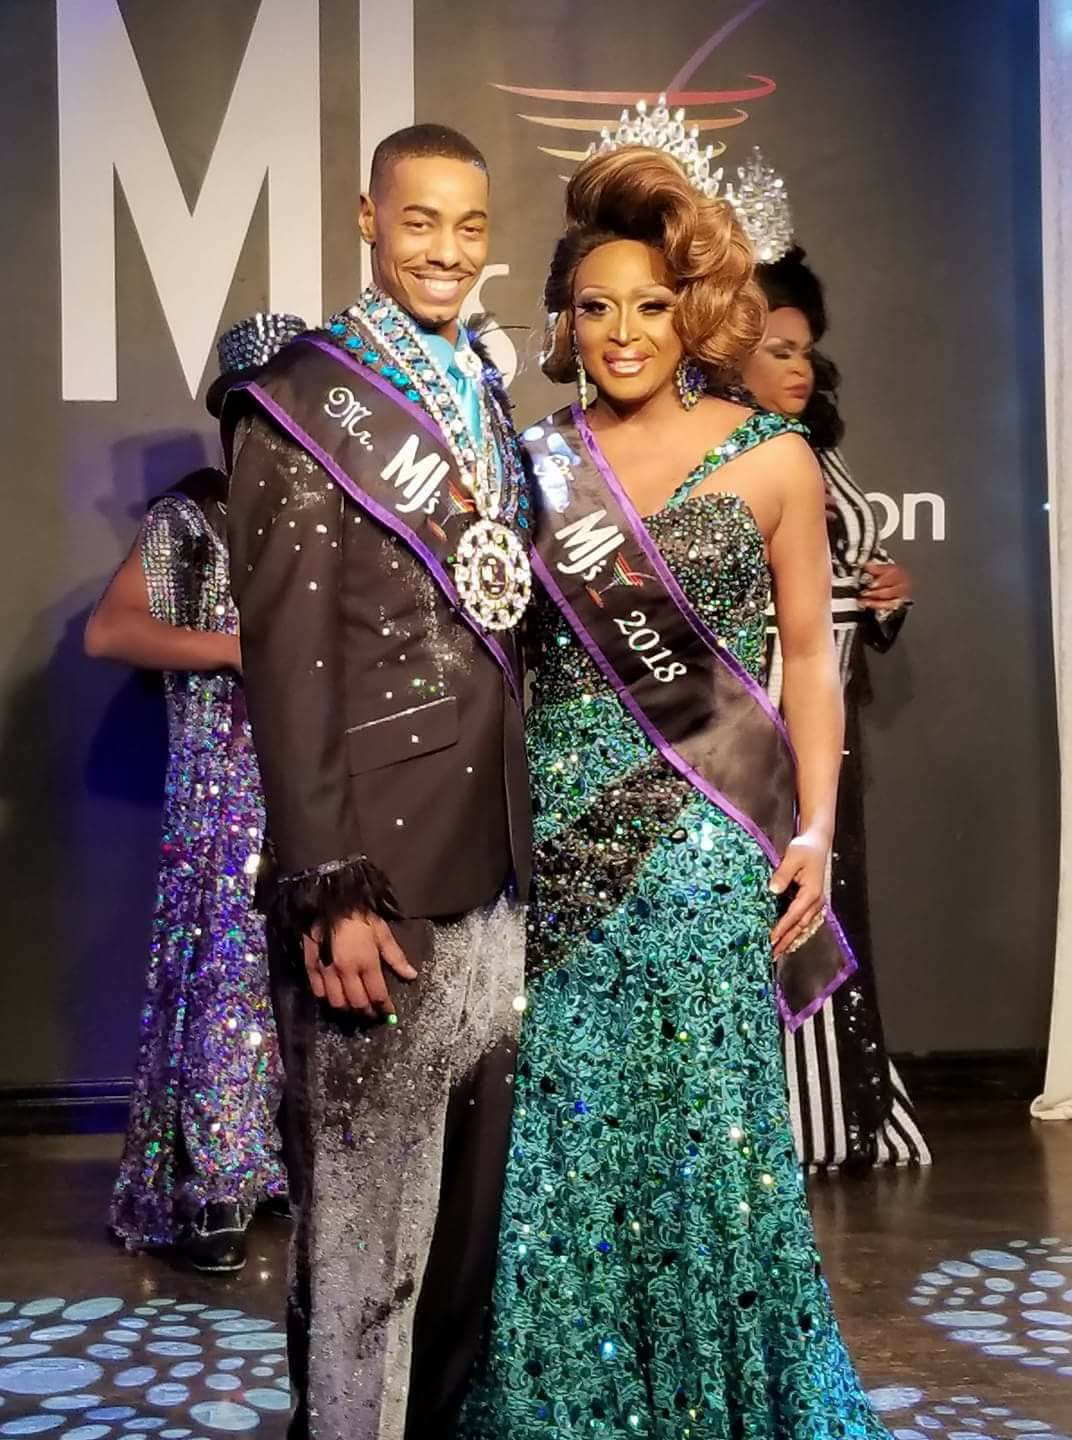 Shampaine Austen Lee and Leah Halston shortly after their respective wins as Mr. and Miss MJ's 2018 at MJ's on Jefferson in Dayton, Ohio on the night of February 24th, 2018.